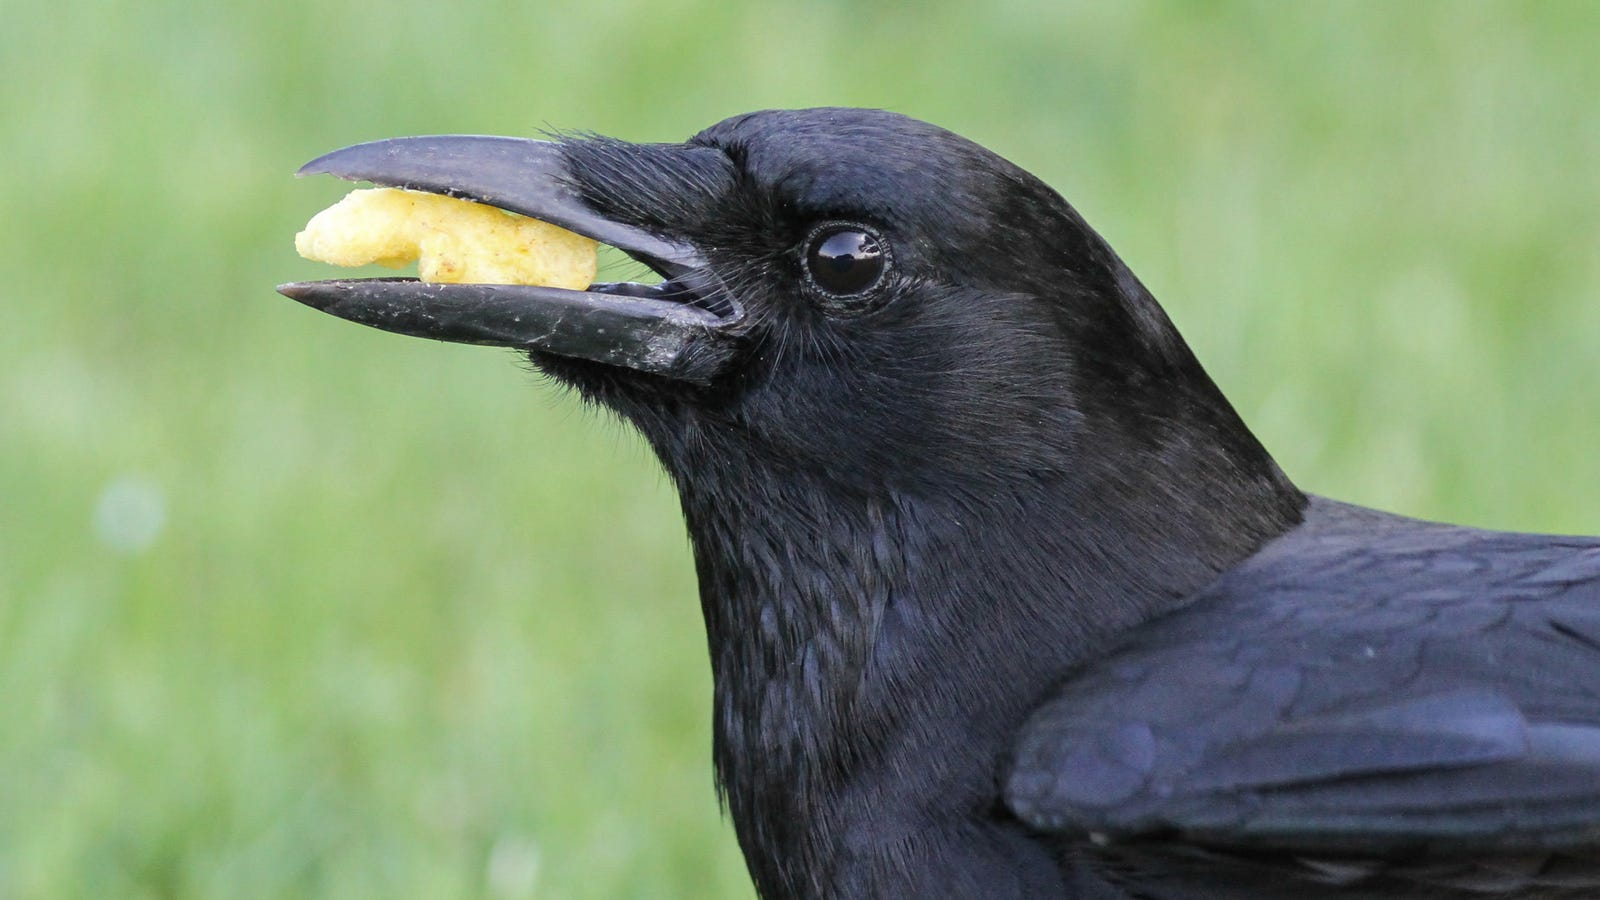 Crows Get Higher Cholesterol From Eating Our Cheeseburgers